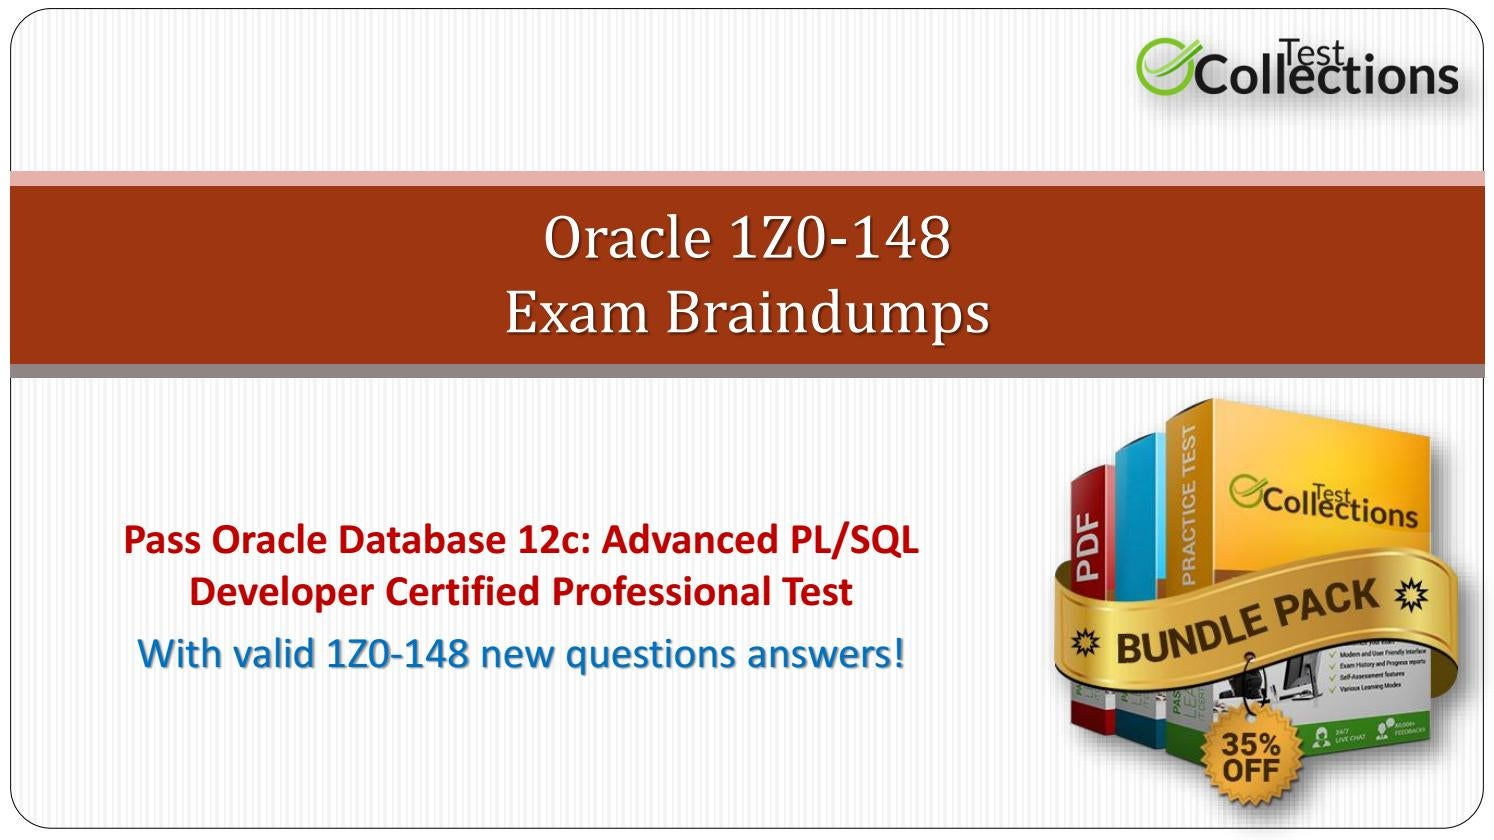 1z0 148 exam dumps and quick tips about 1z0 148 exam by stacy 1z0 148 exam dumps and quick tips about 1z0 148 exam by stacy mcghee issuu xflitez Image collections